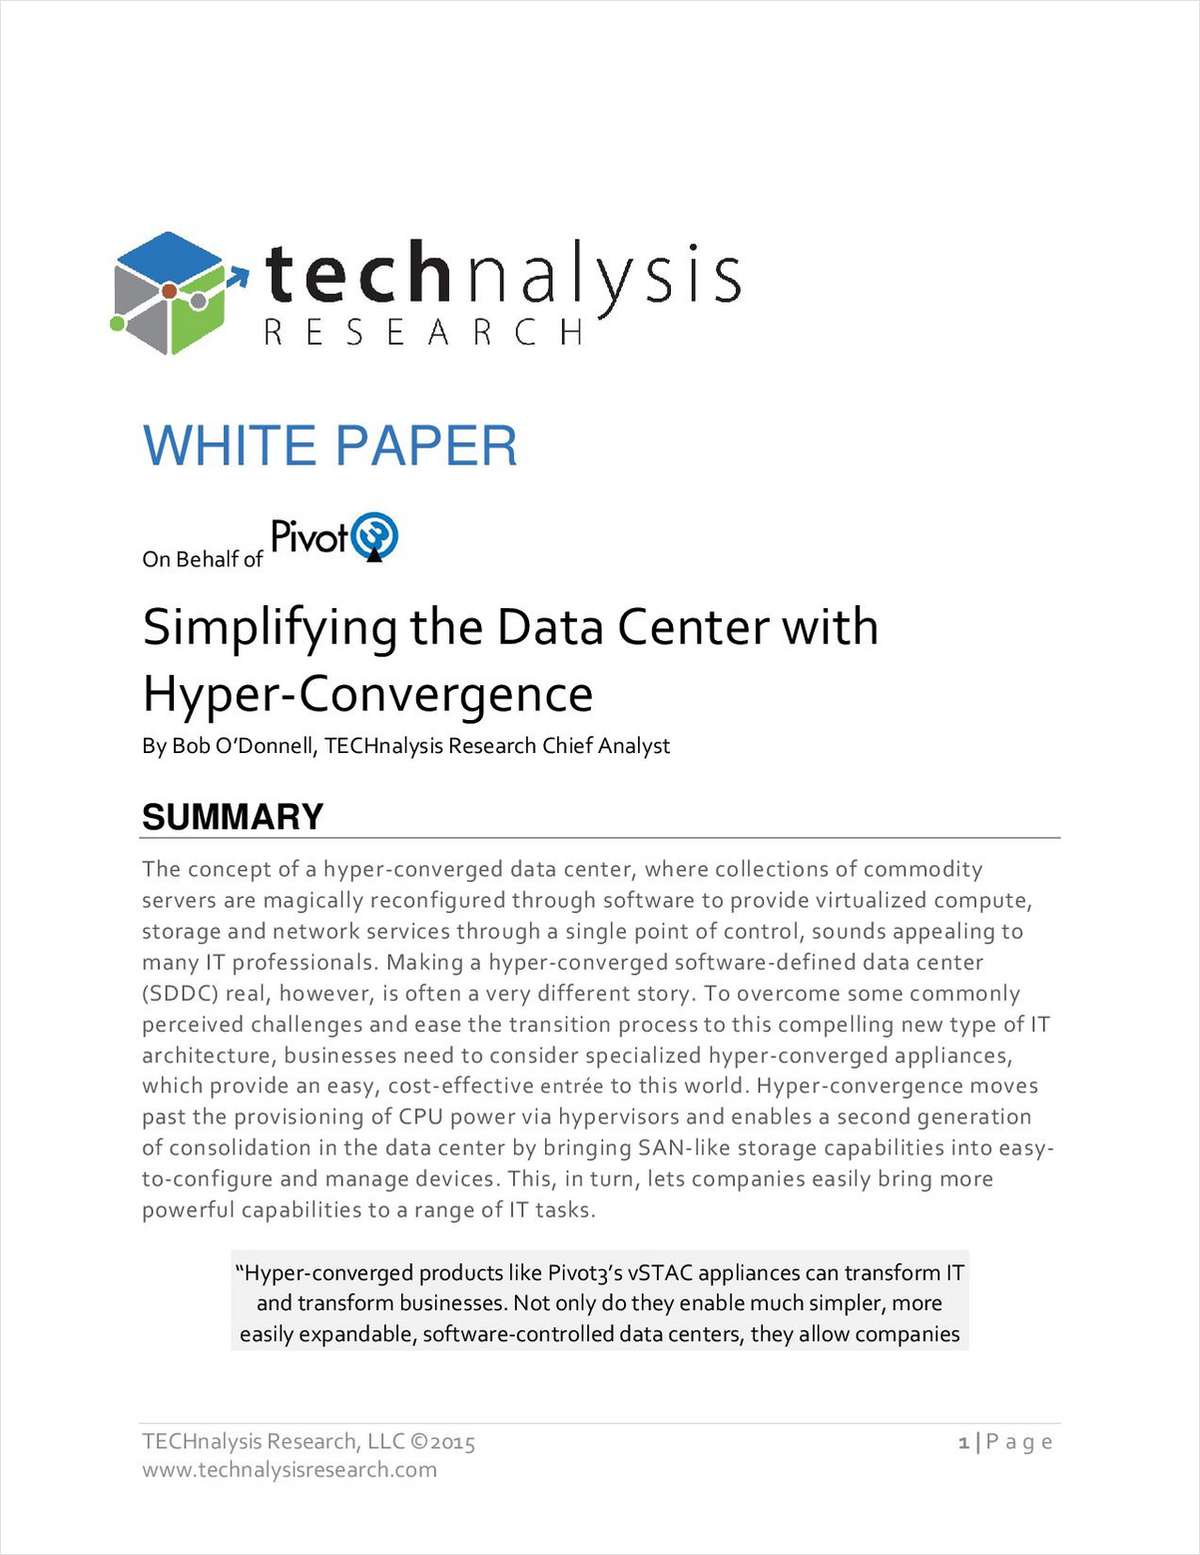 Simplify Your Data Center with Hyper-Convergence